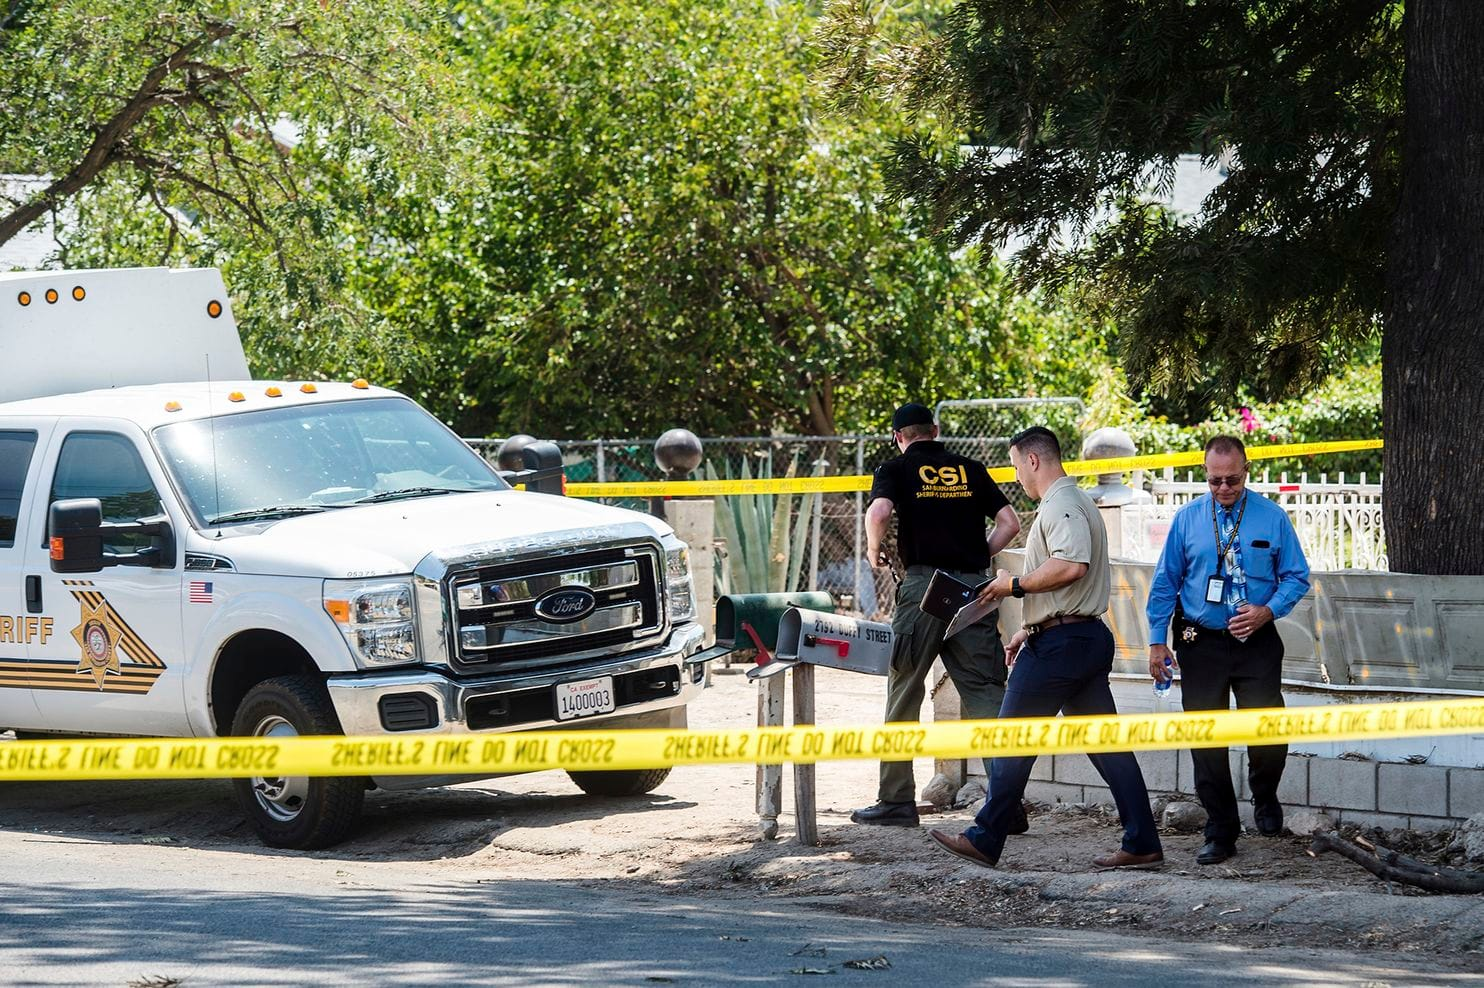 2-year-old girl accidentally fatally shot by 4-year-old boy in U.S. state of California